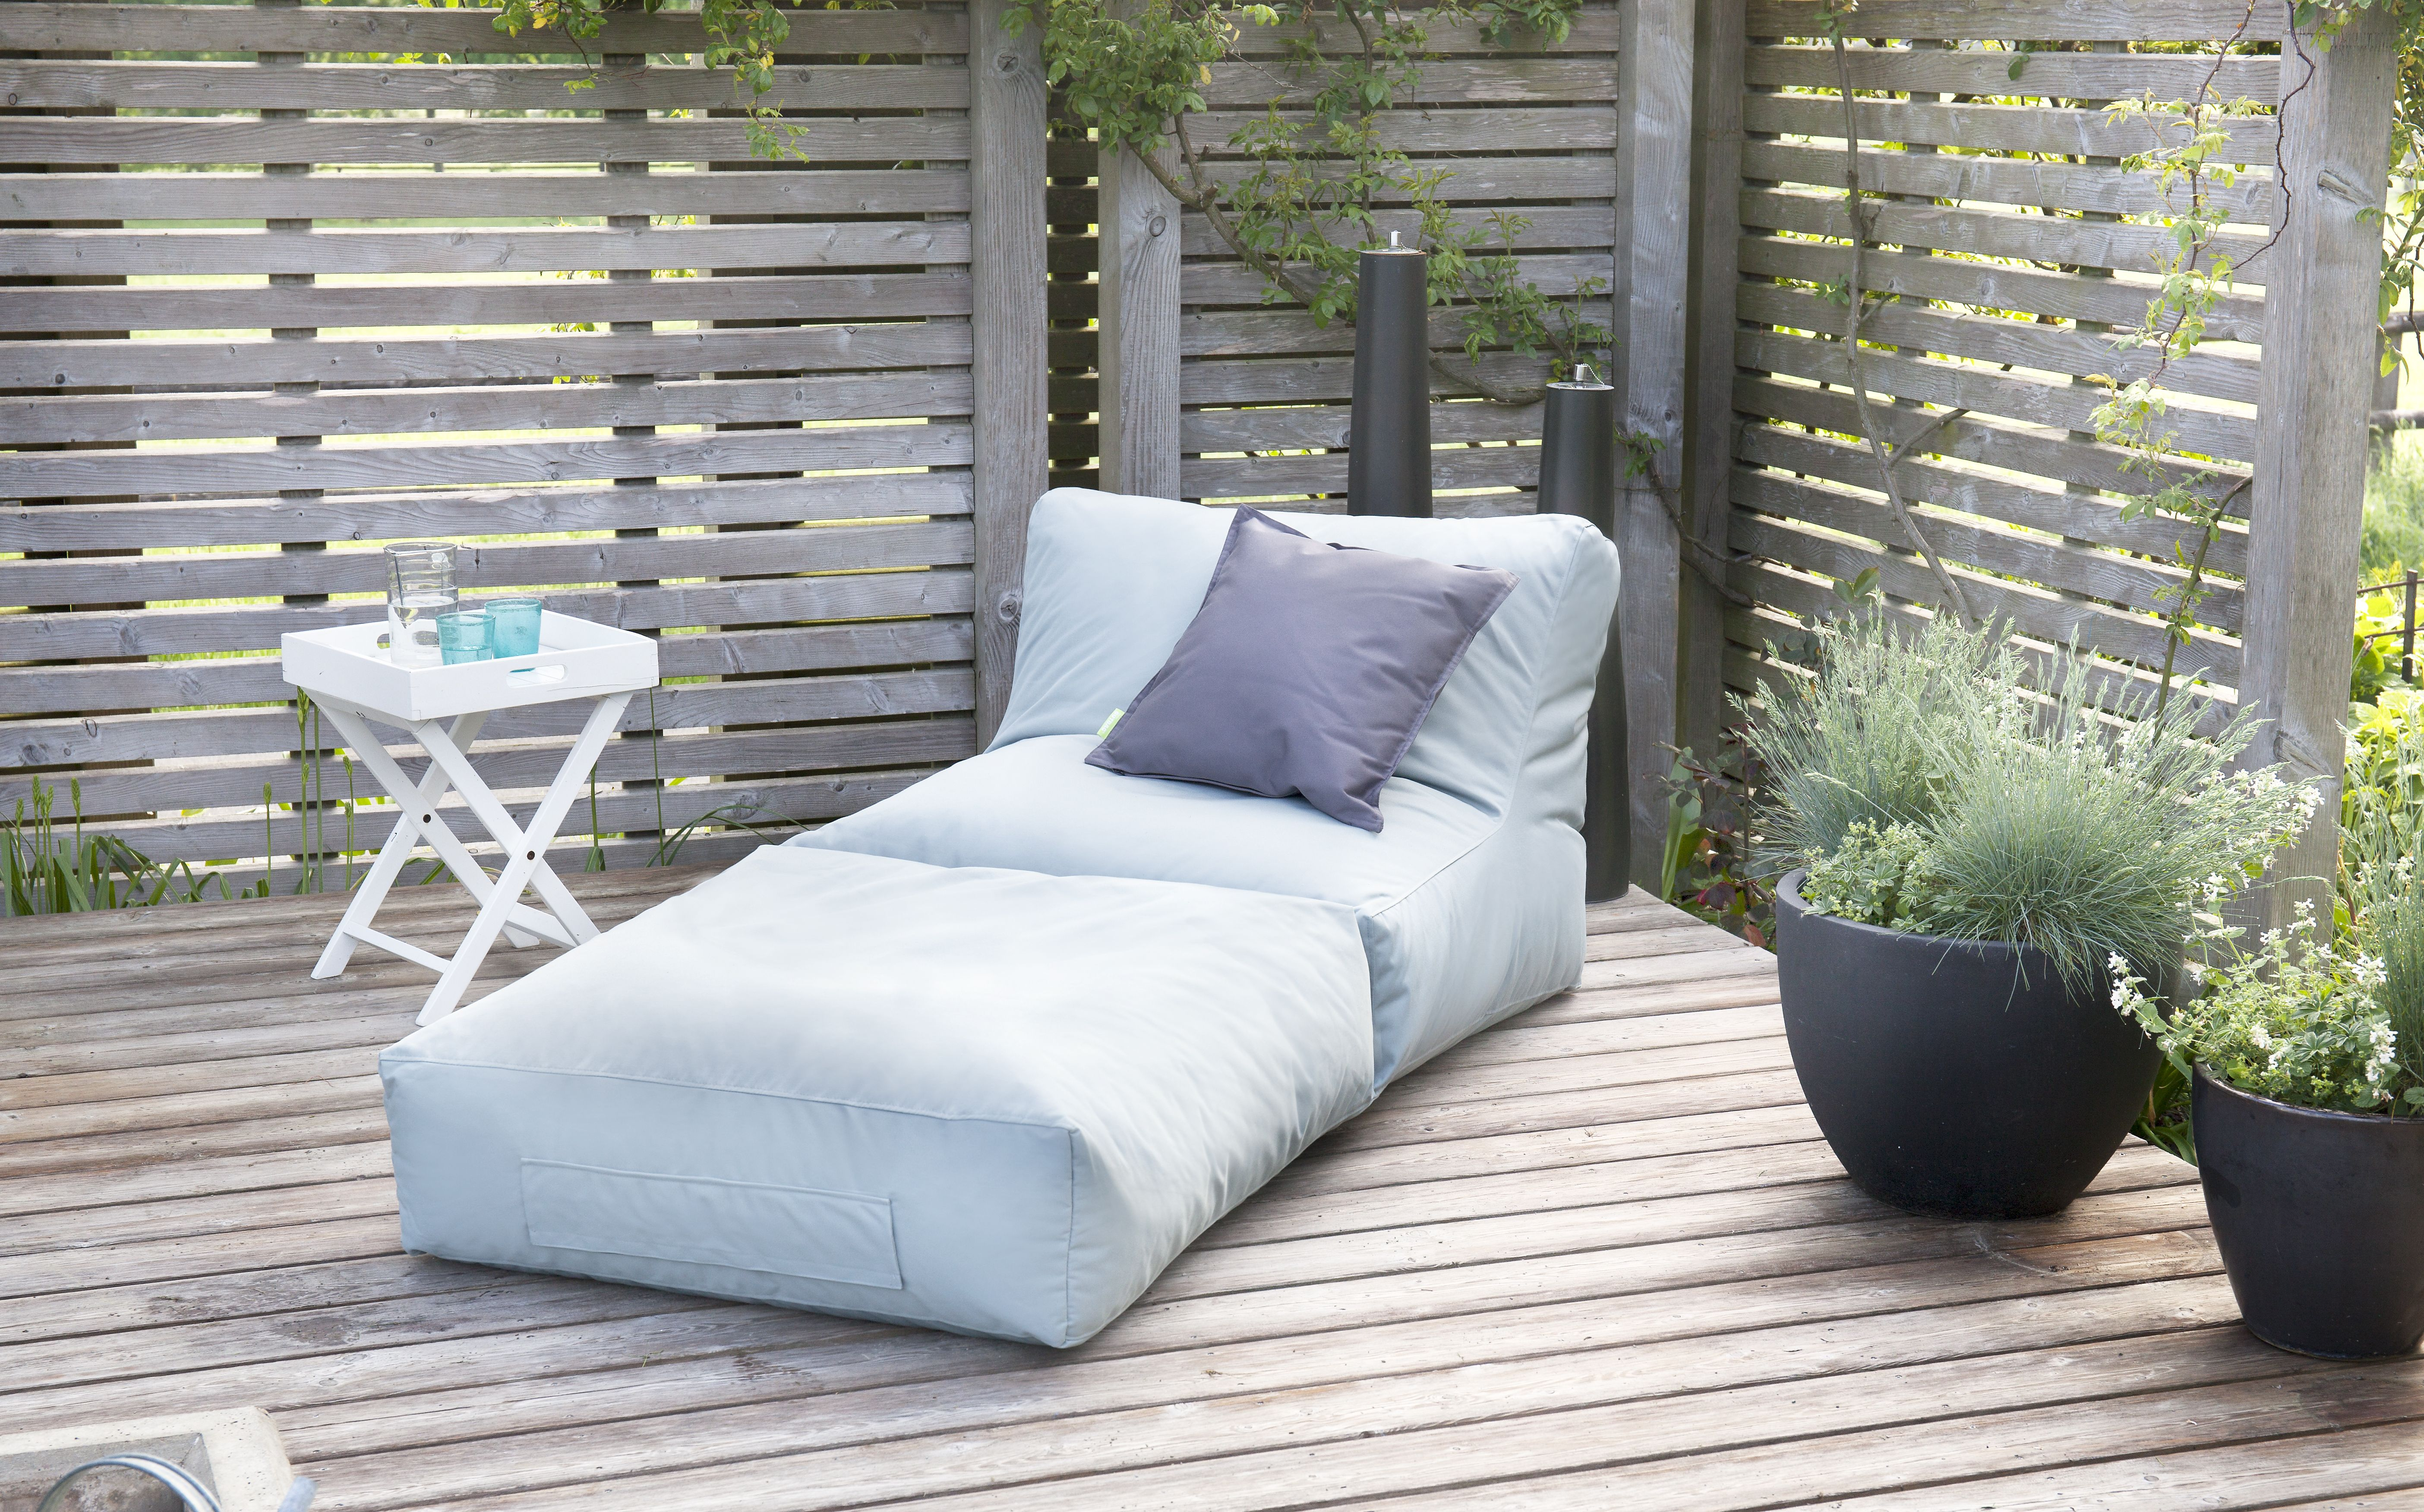 Lounge Möbel Wetterfest Sitzsack Outbag - Modell: Peak, Material: Plus Farbe: Stone-grey | Outdoor Lounge Möbel, Lounge Sessel Garten, Outdoor Möbel